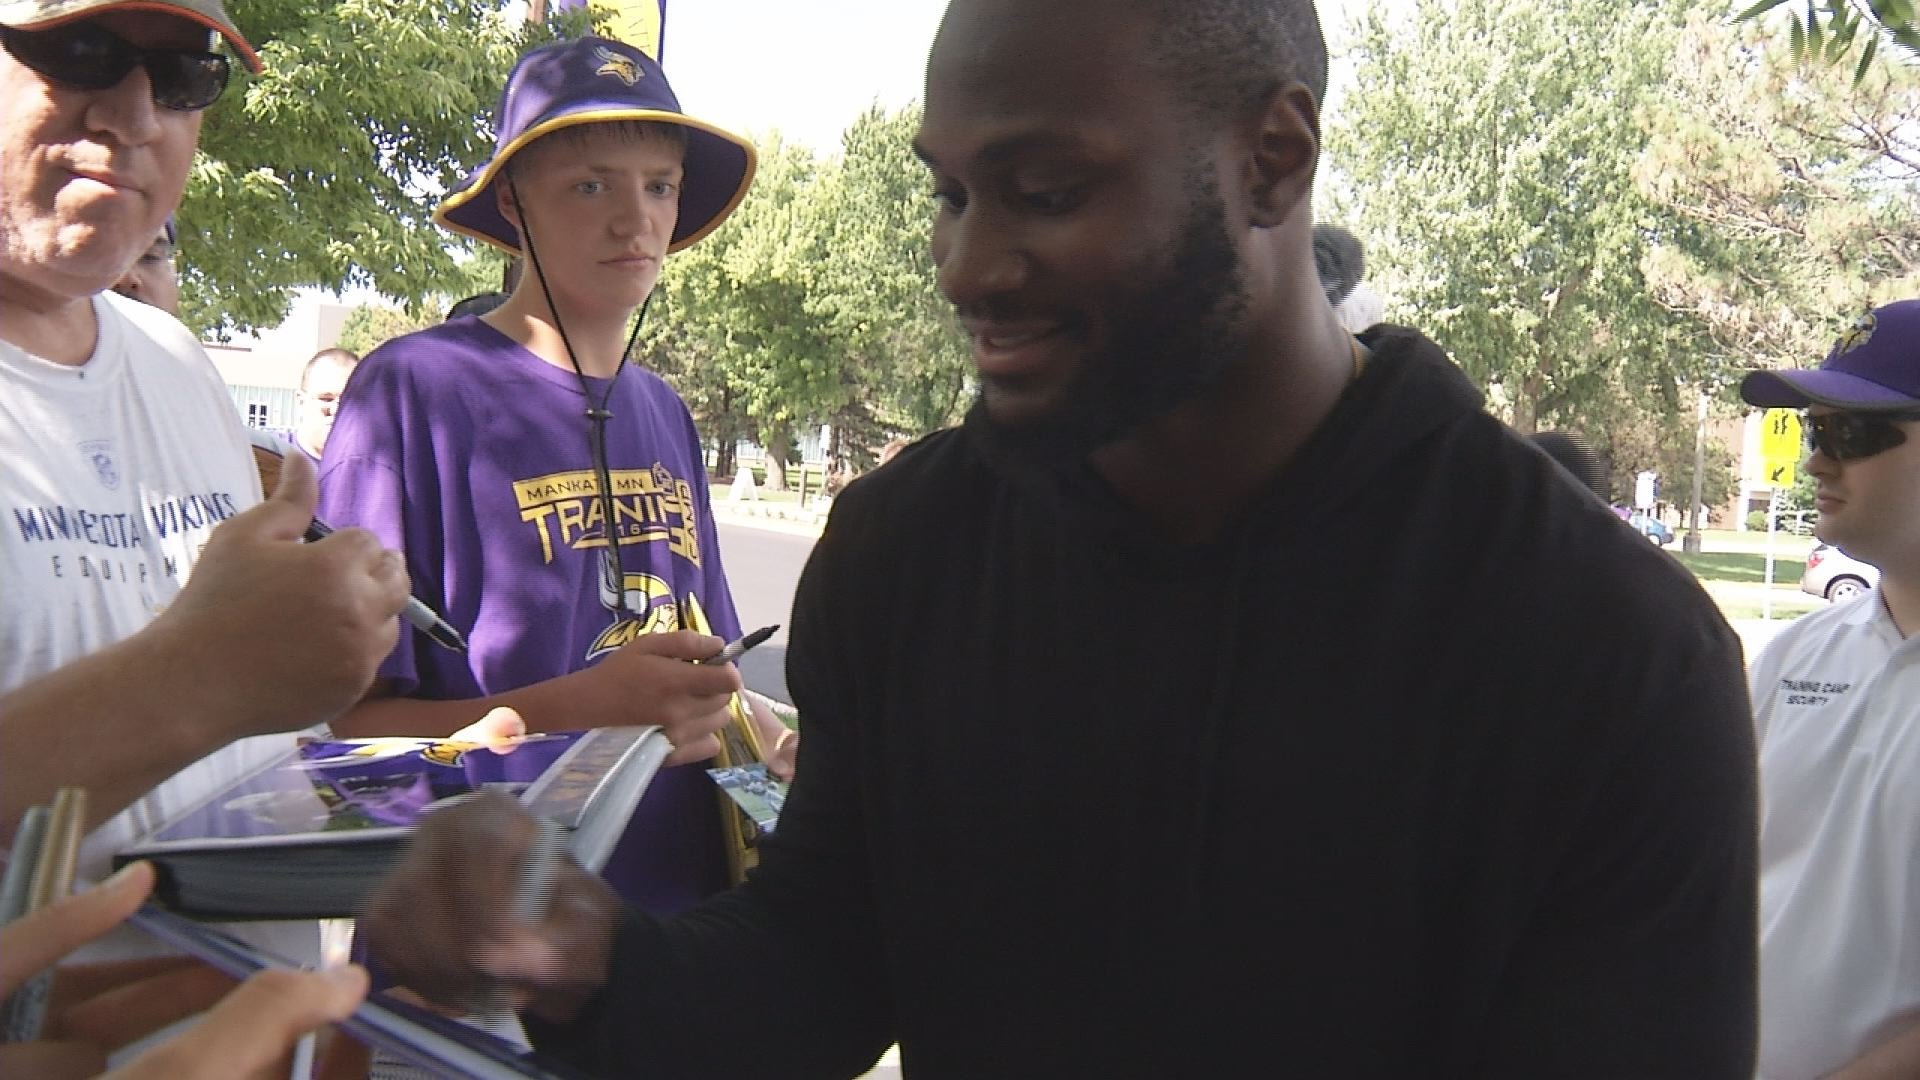 Vikings rookies report to camp in Mankato today